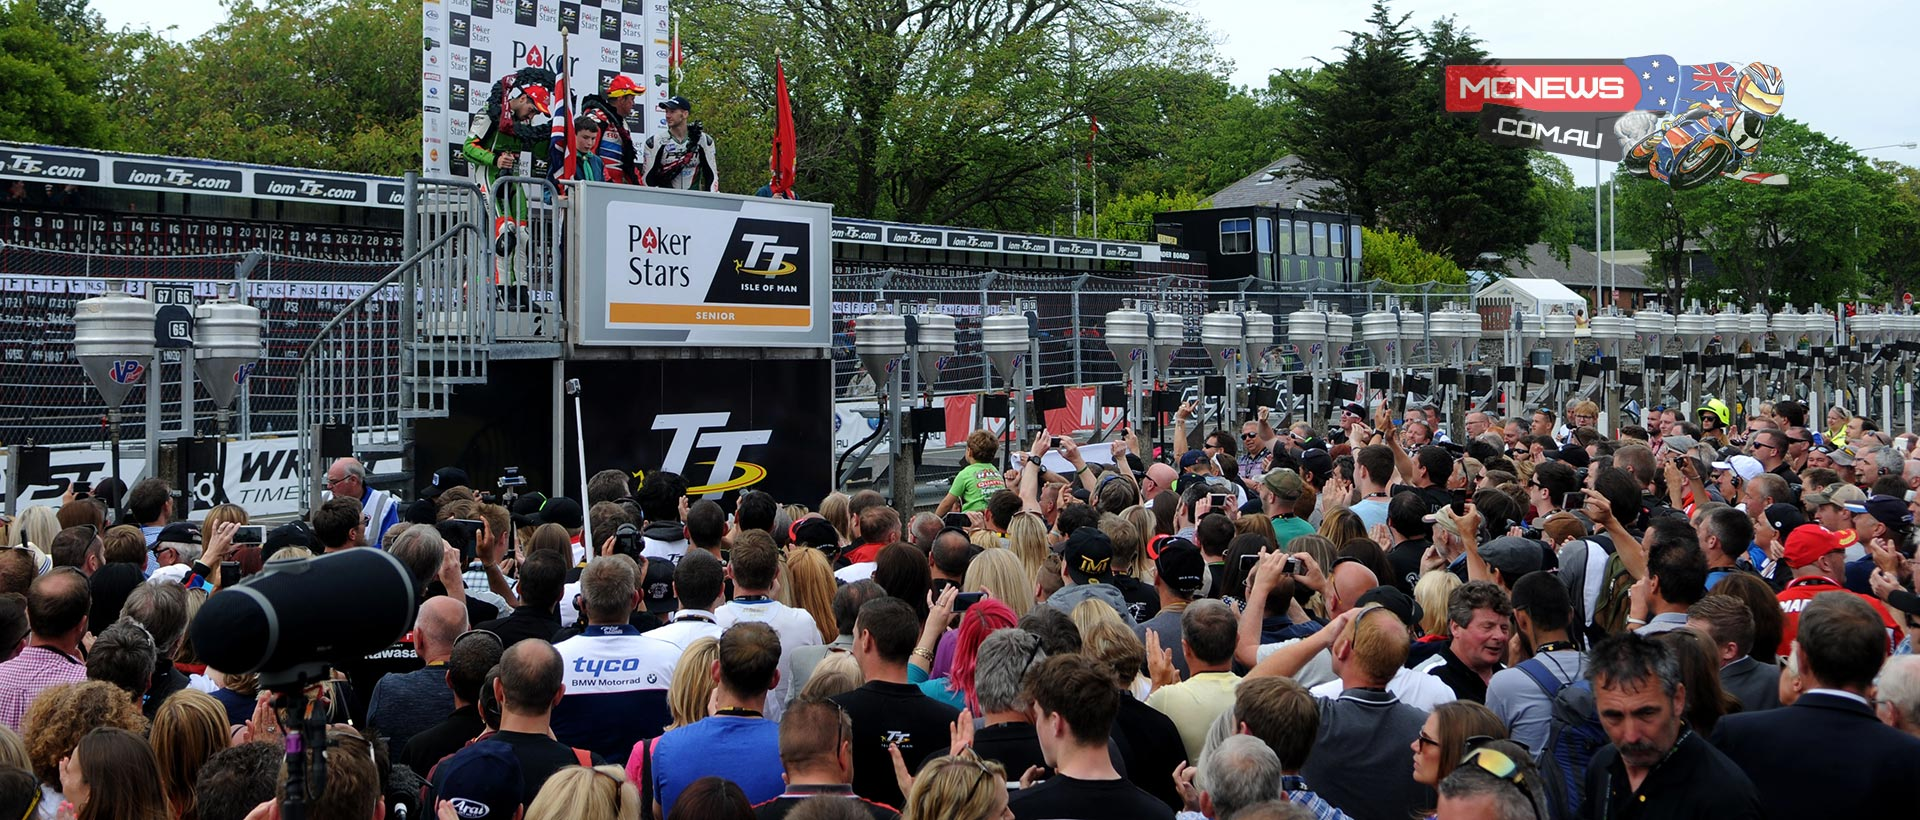 Huge crowds for the 2015 PokerStars Senior TT podium. Credit Simon Patterson/Pacemaker Press Intl.